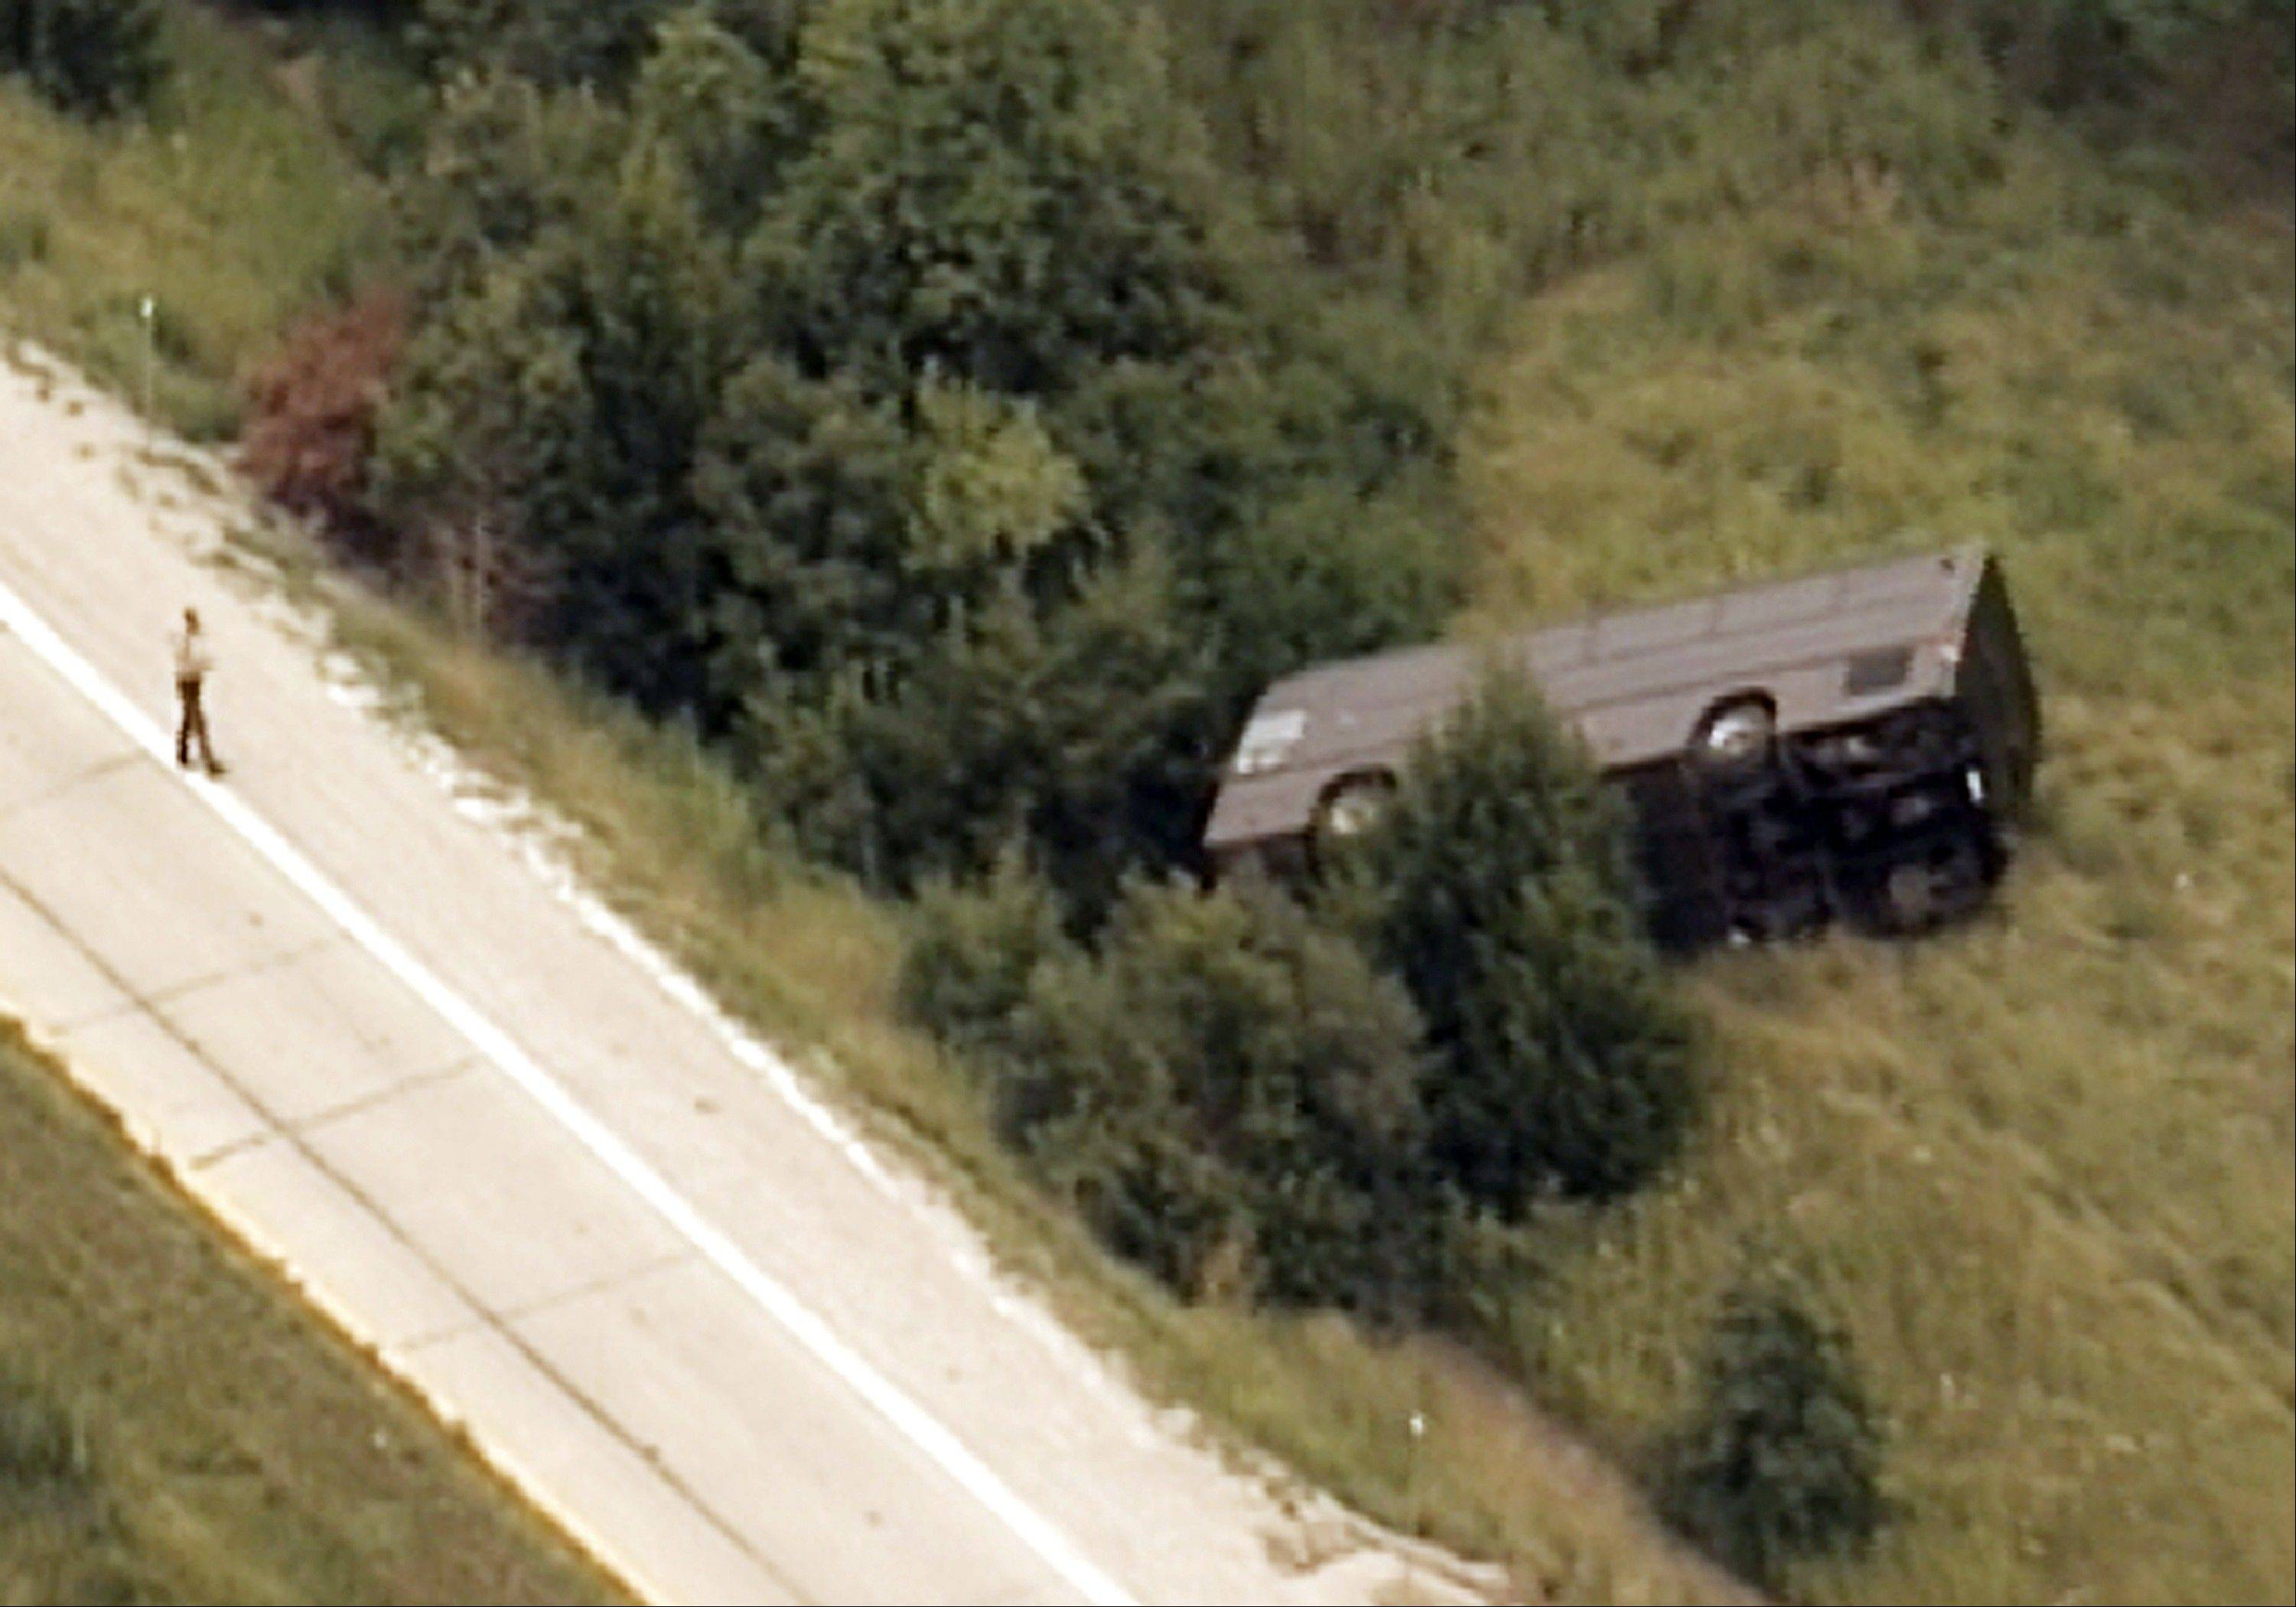 An overturned charter bus on Interstate 70 near Danville, Mo.